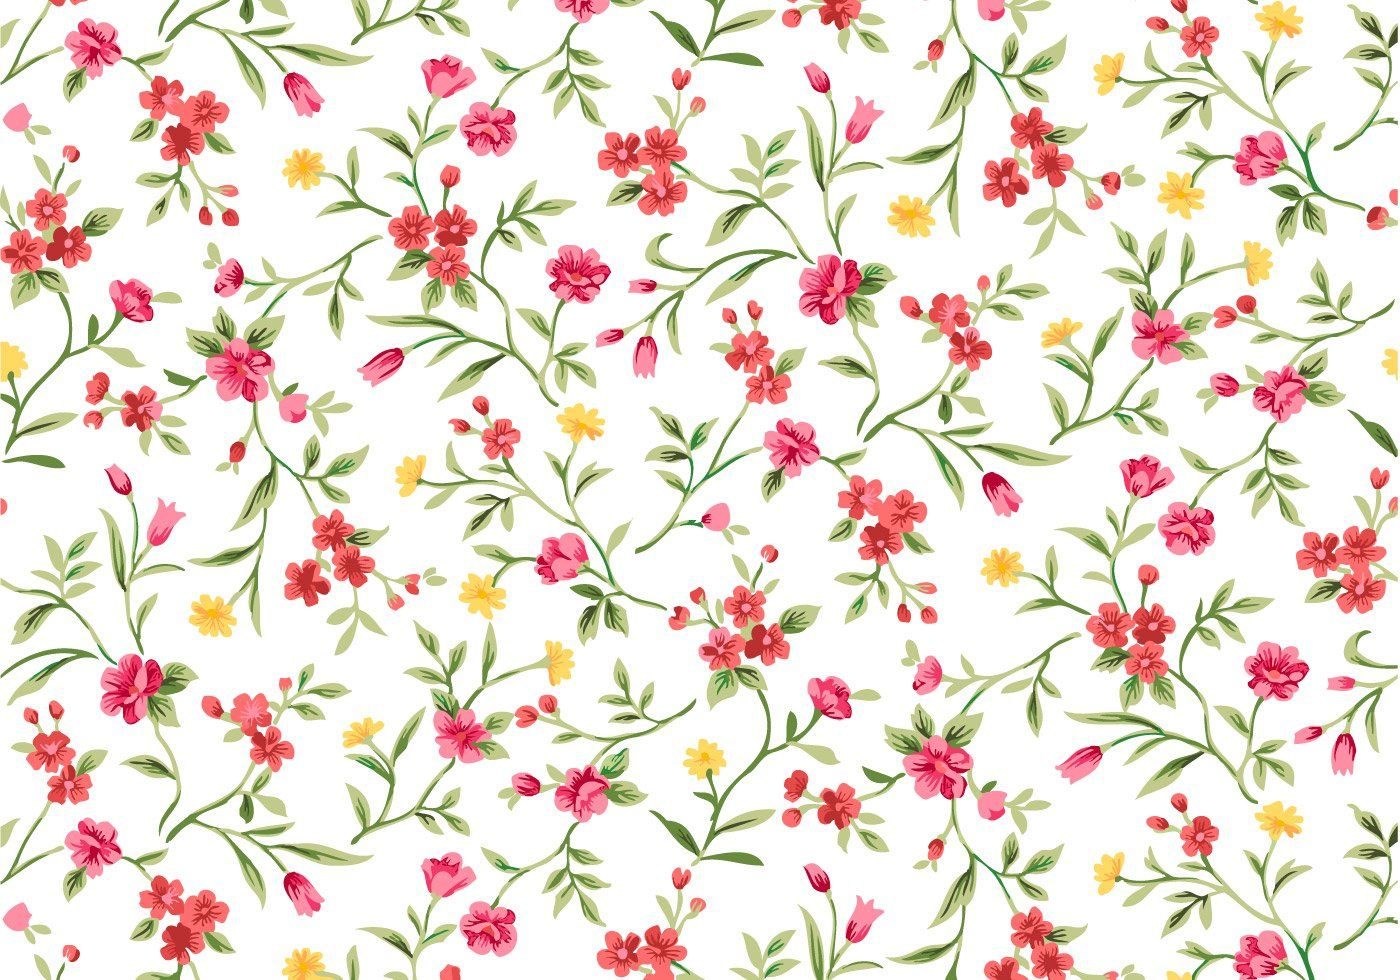 Watercolor Floral Seamless Background Vector Graphic